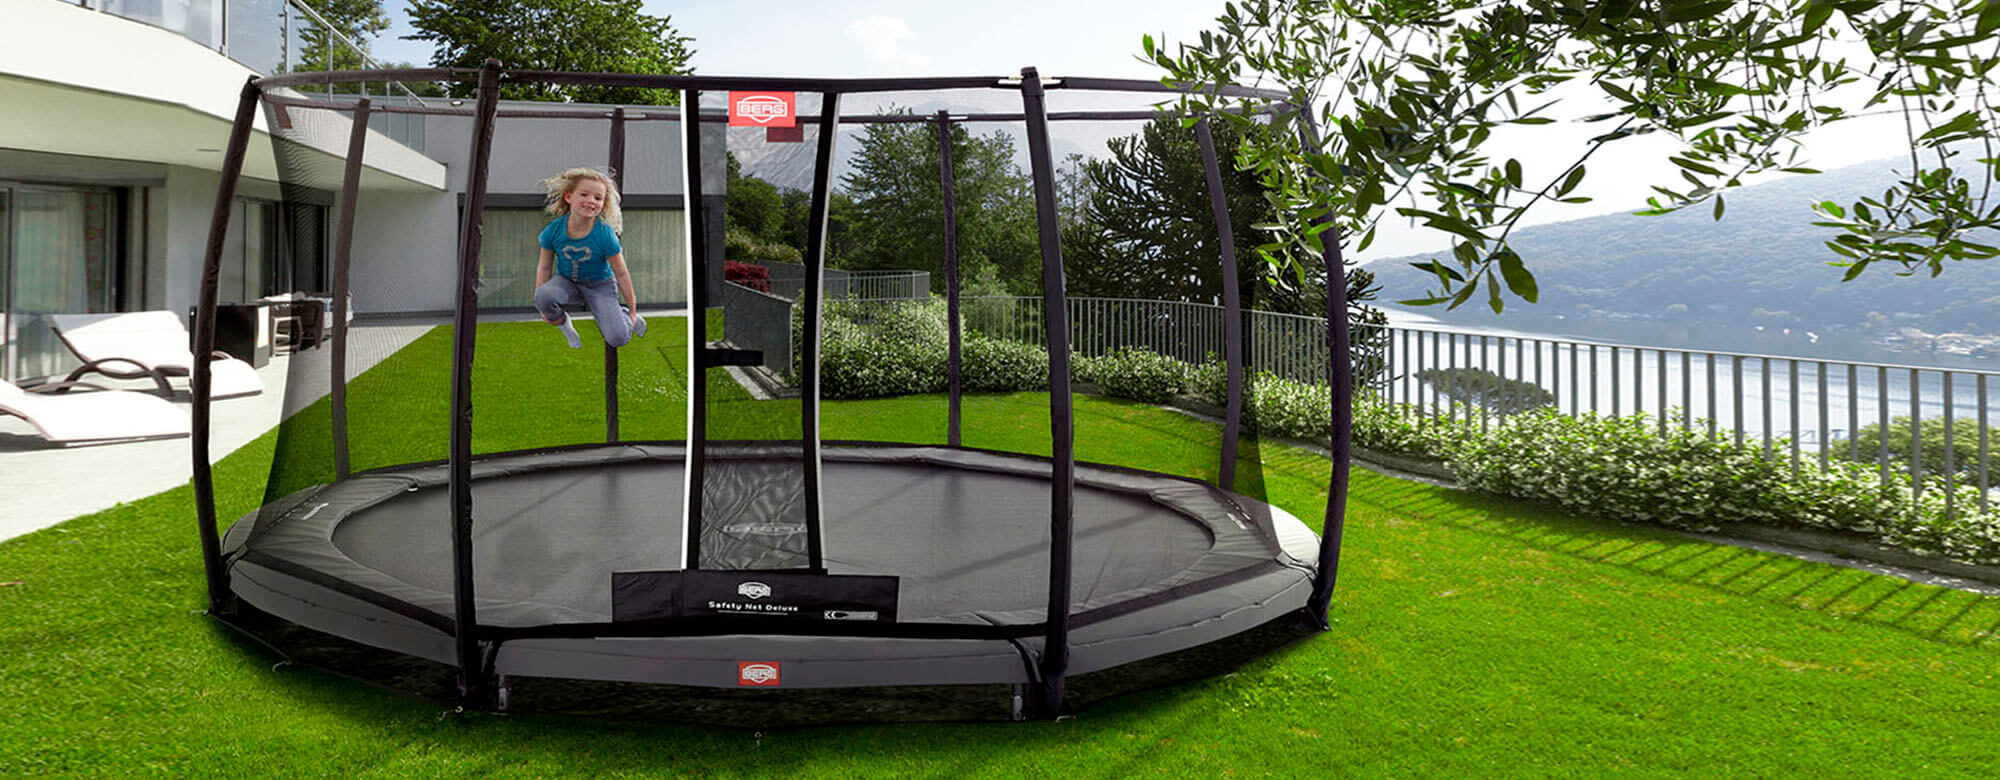 Trampolin Training - Gartentrampolin - BERG Champion - trampolin-profi.de